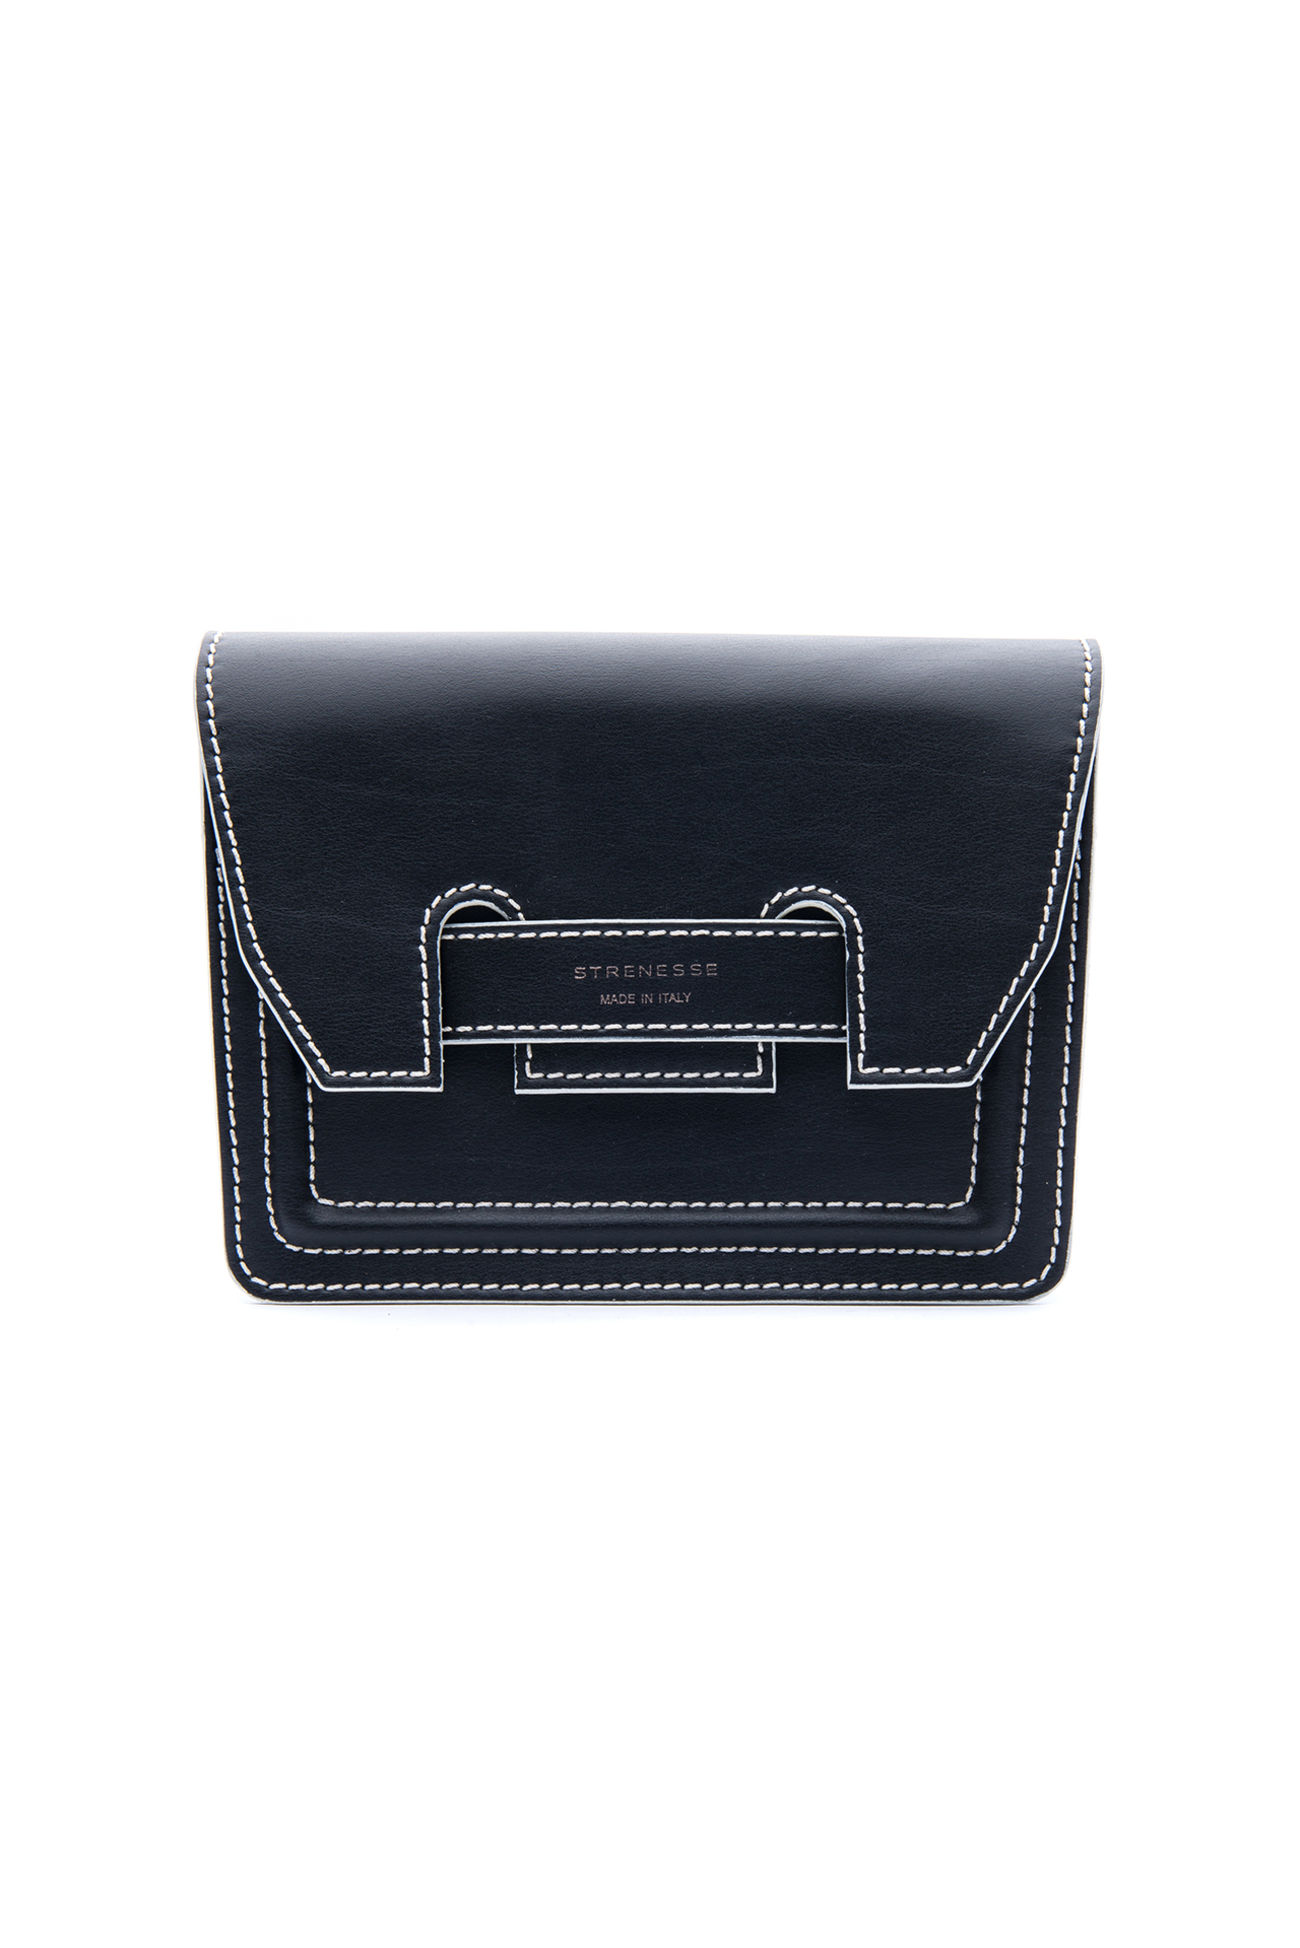 2-in-1 belt pouch